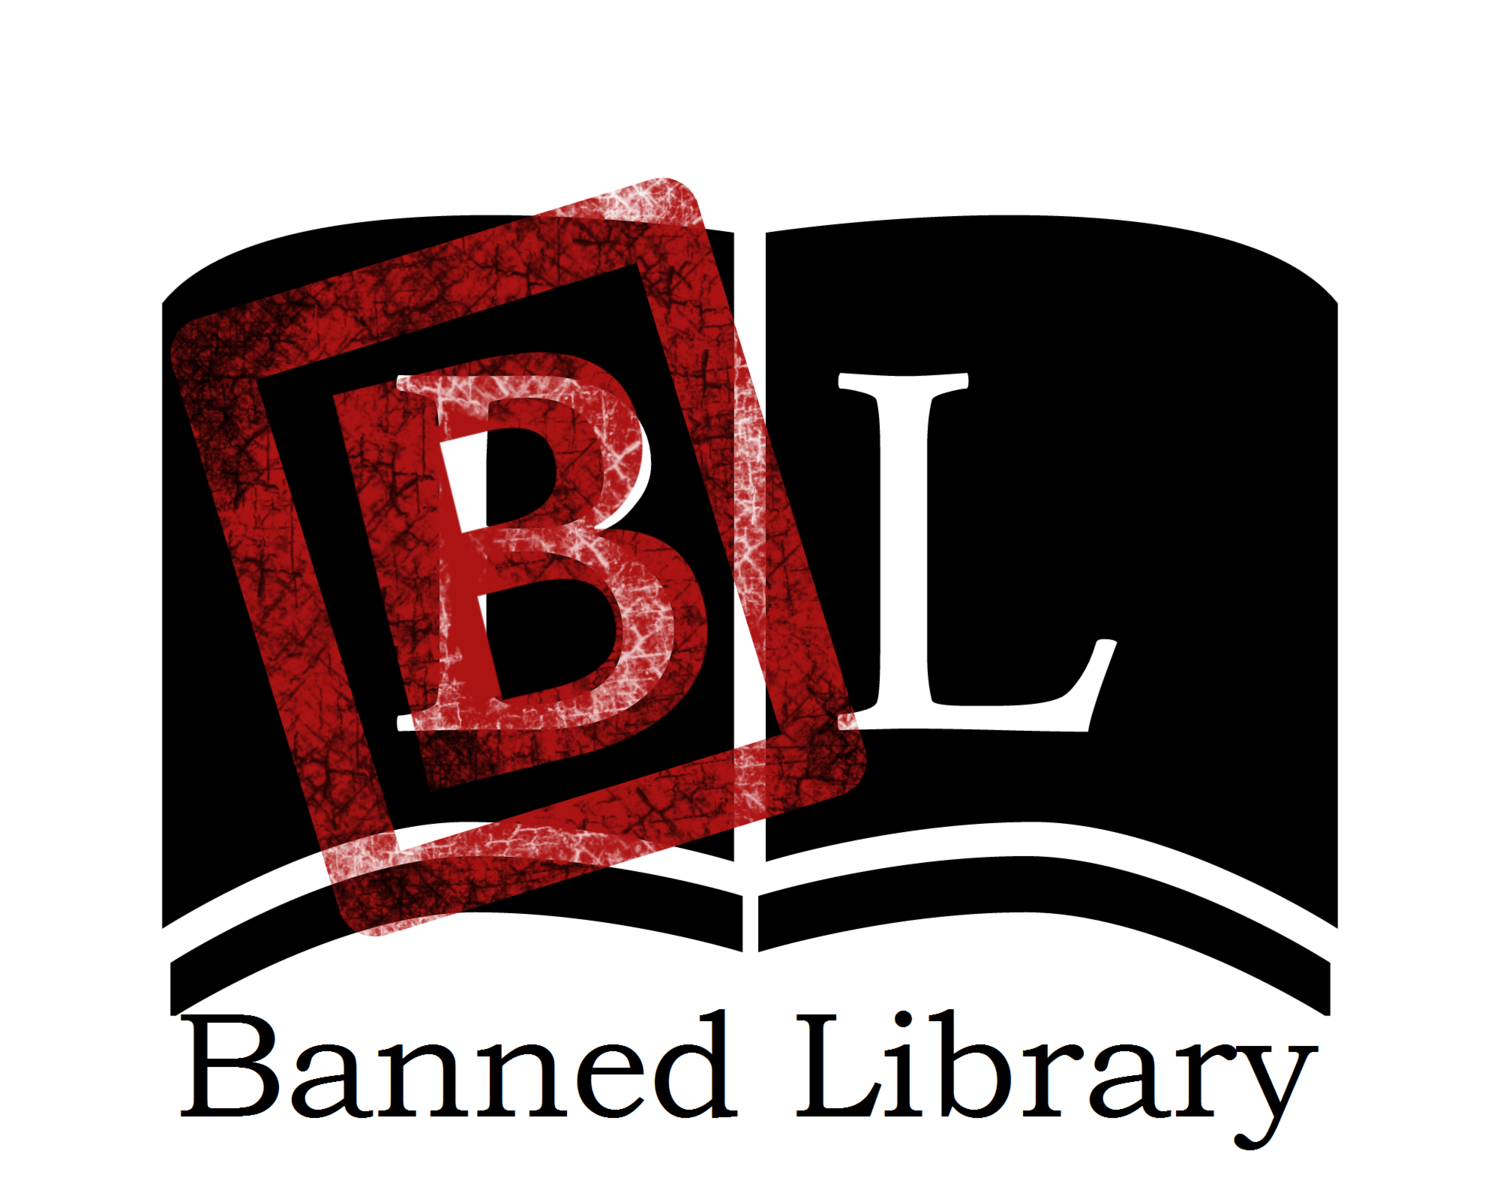 Bridge to Terabithia by Katherine Paterson — Banned Library